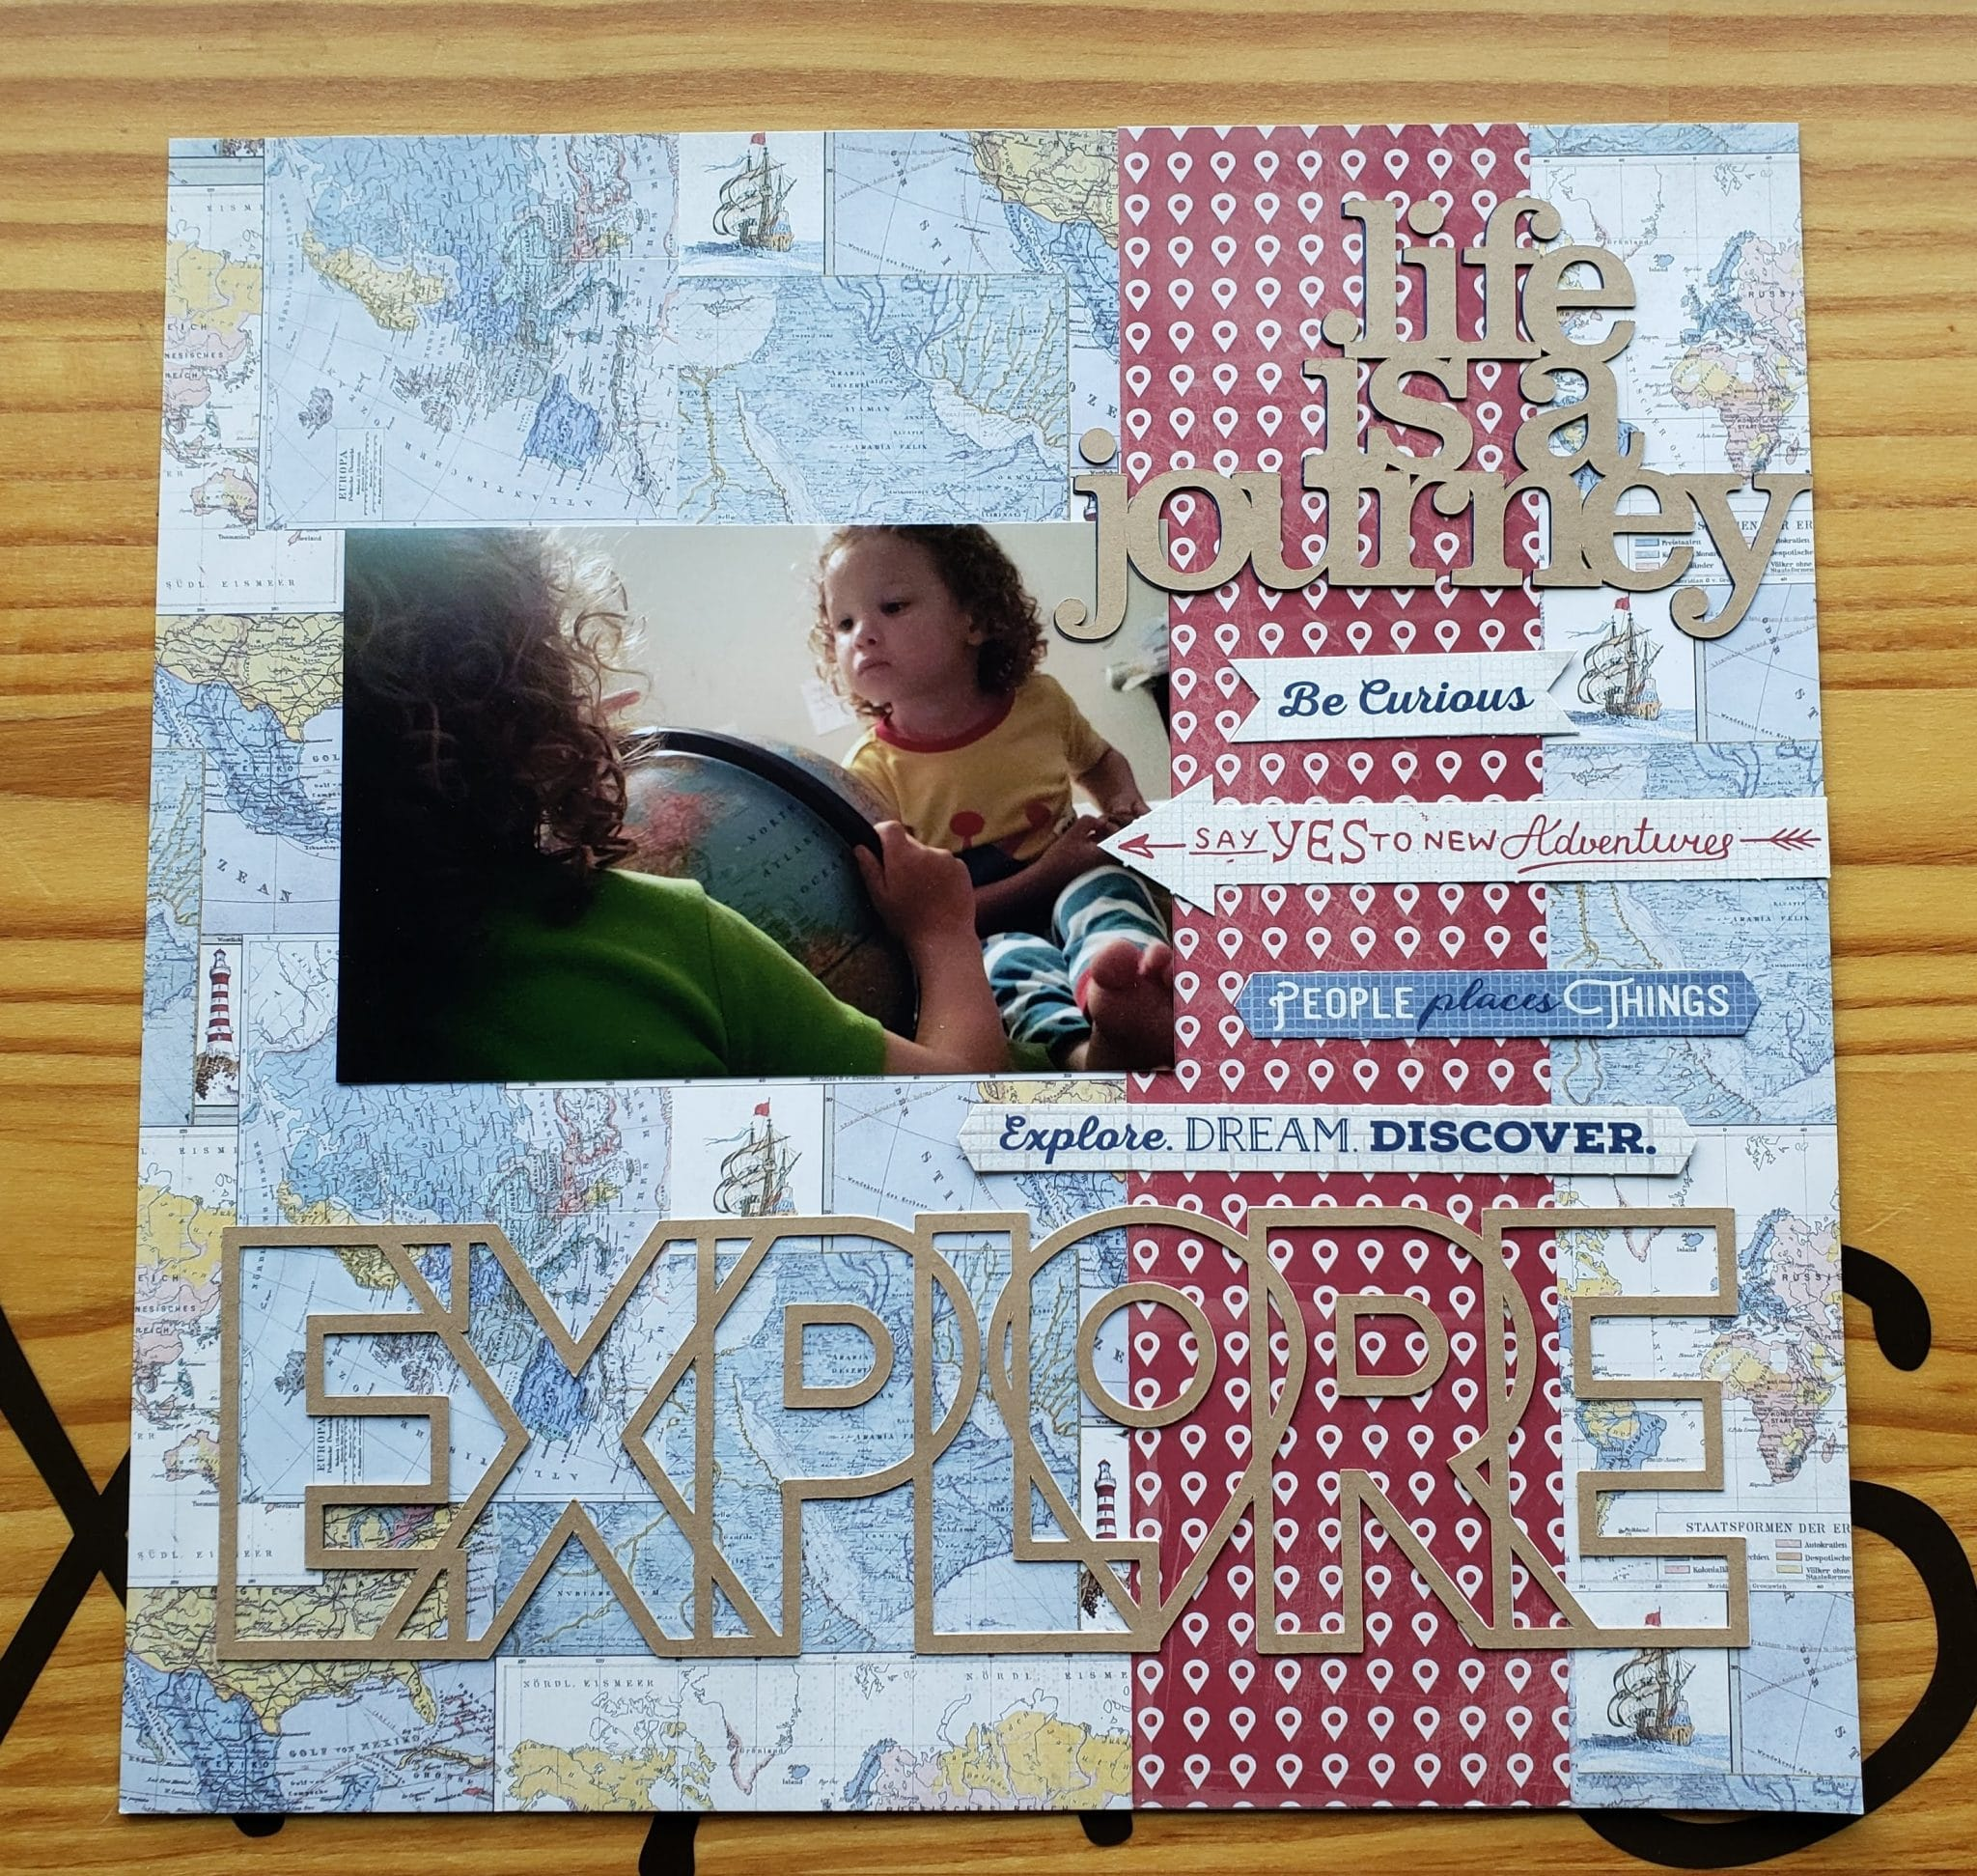 """ScrapbookingStore June 2019 kit - Our Design Team members used all crafting materials from our June 2019 monthly kit called """"Quest"""" collection by Authentique"""